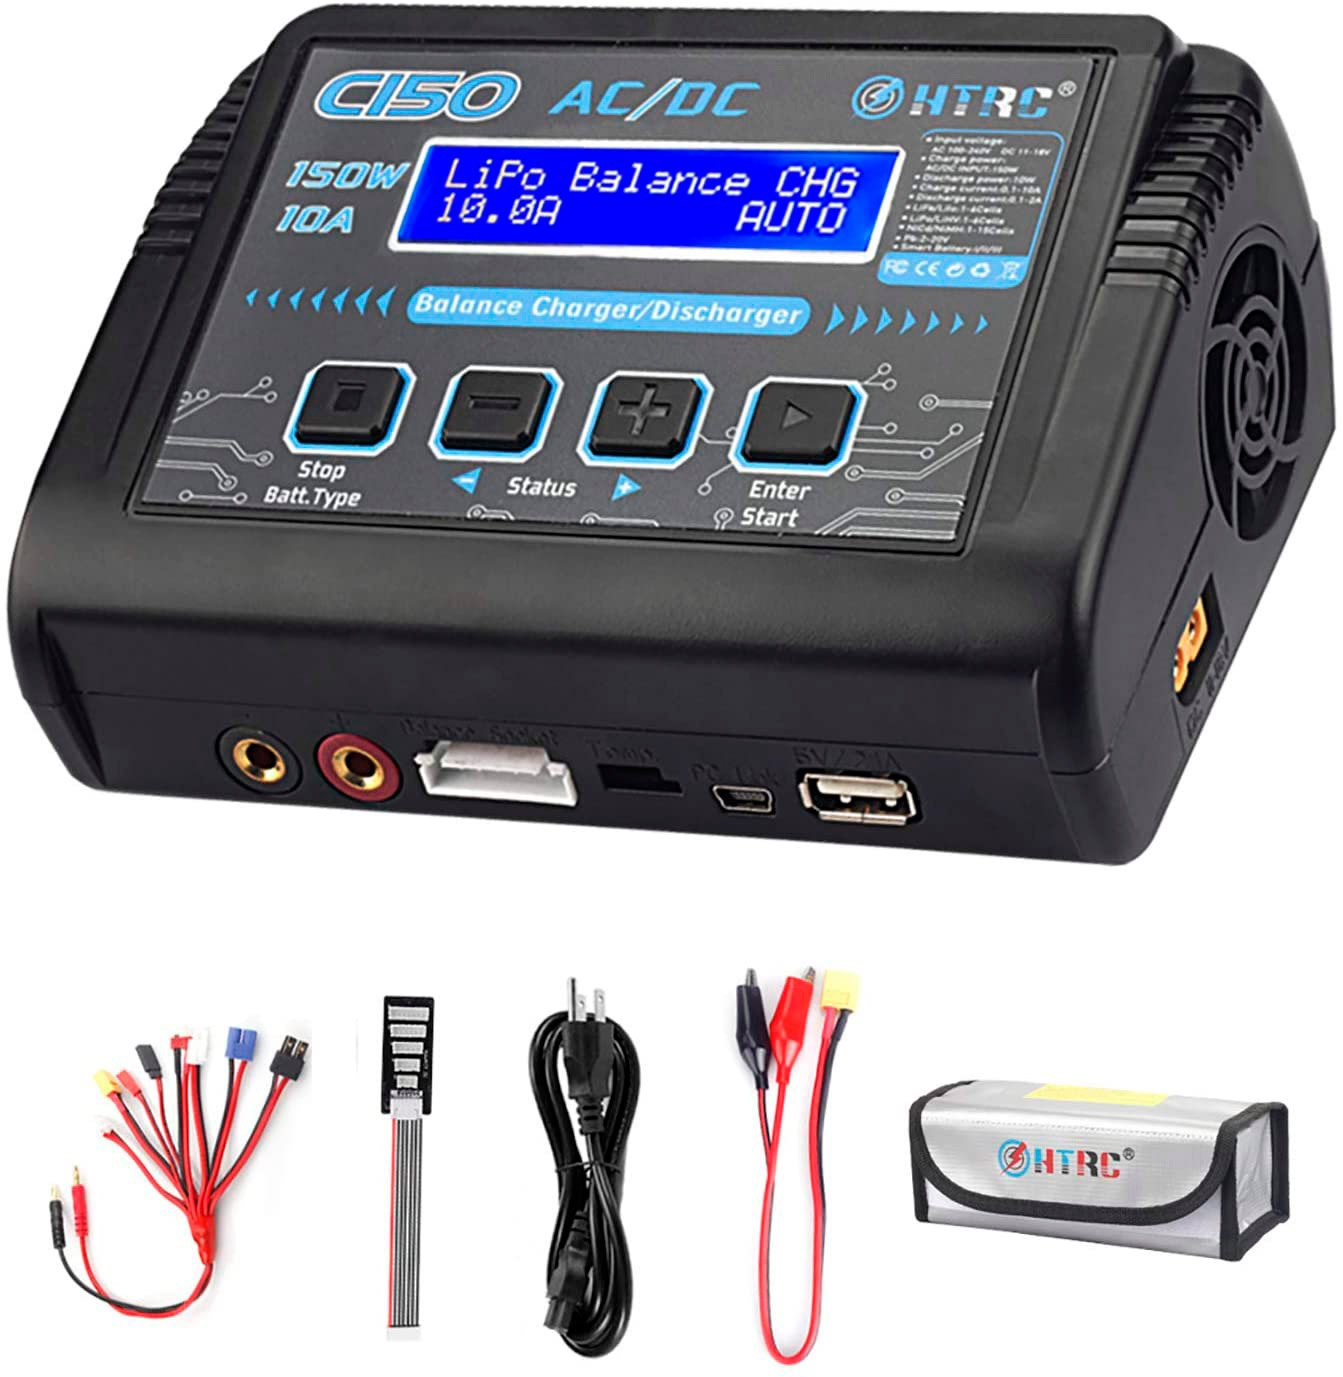 HTRC C150 LiPo Battery Charger review